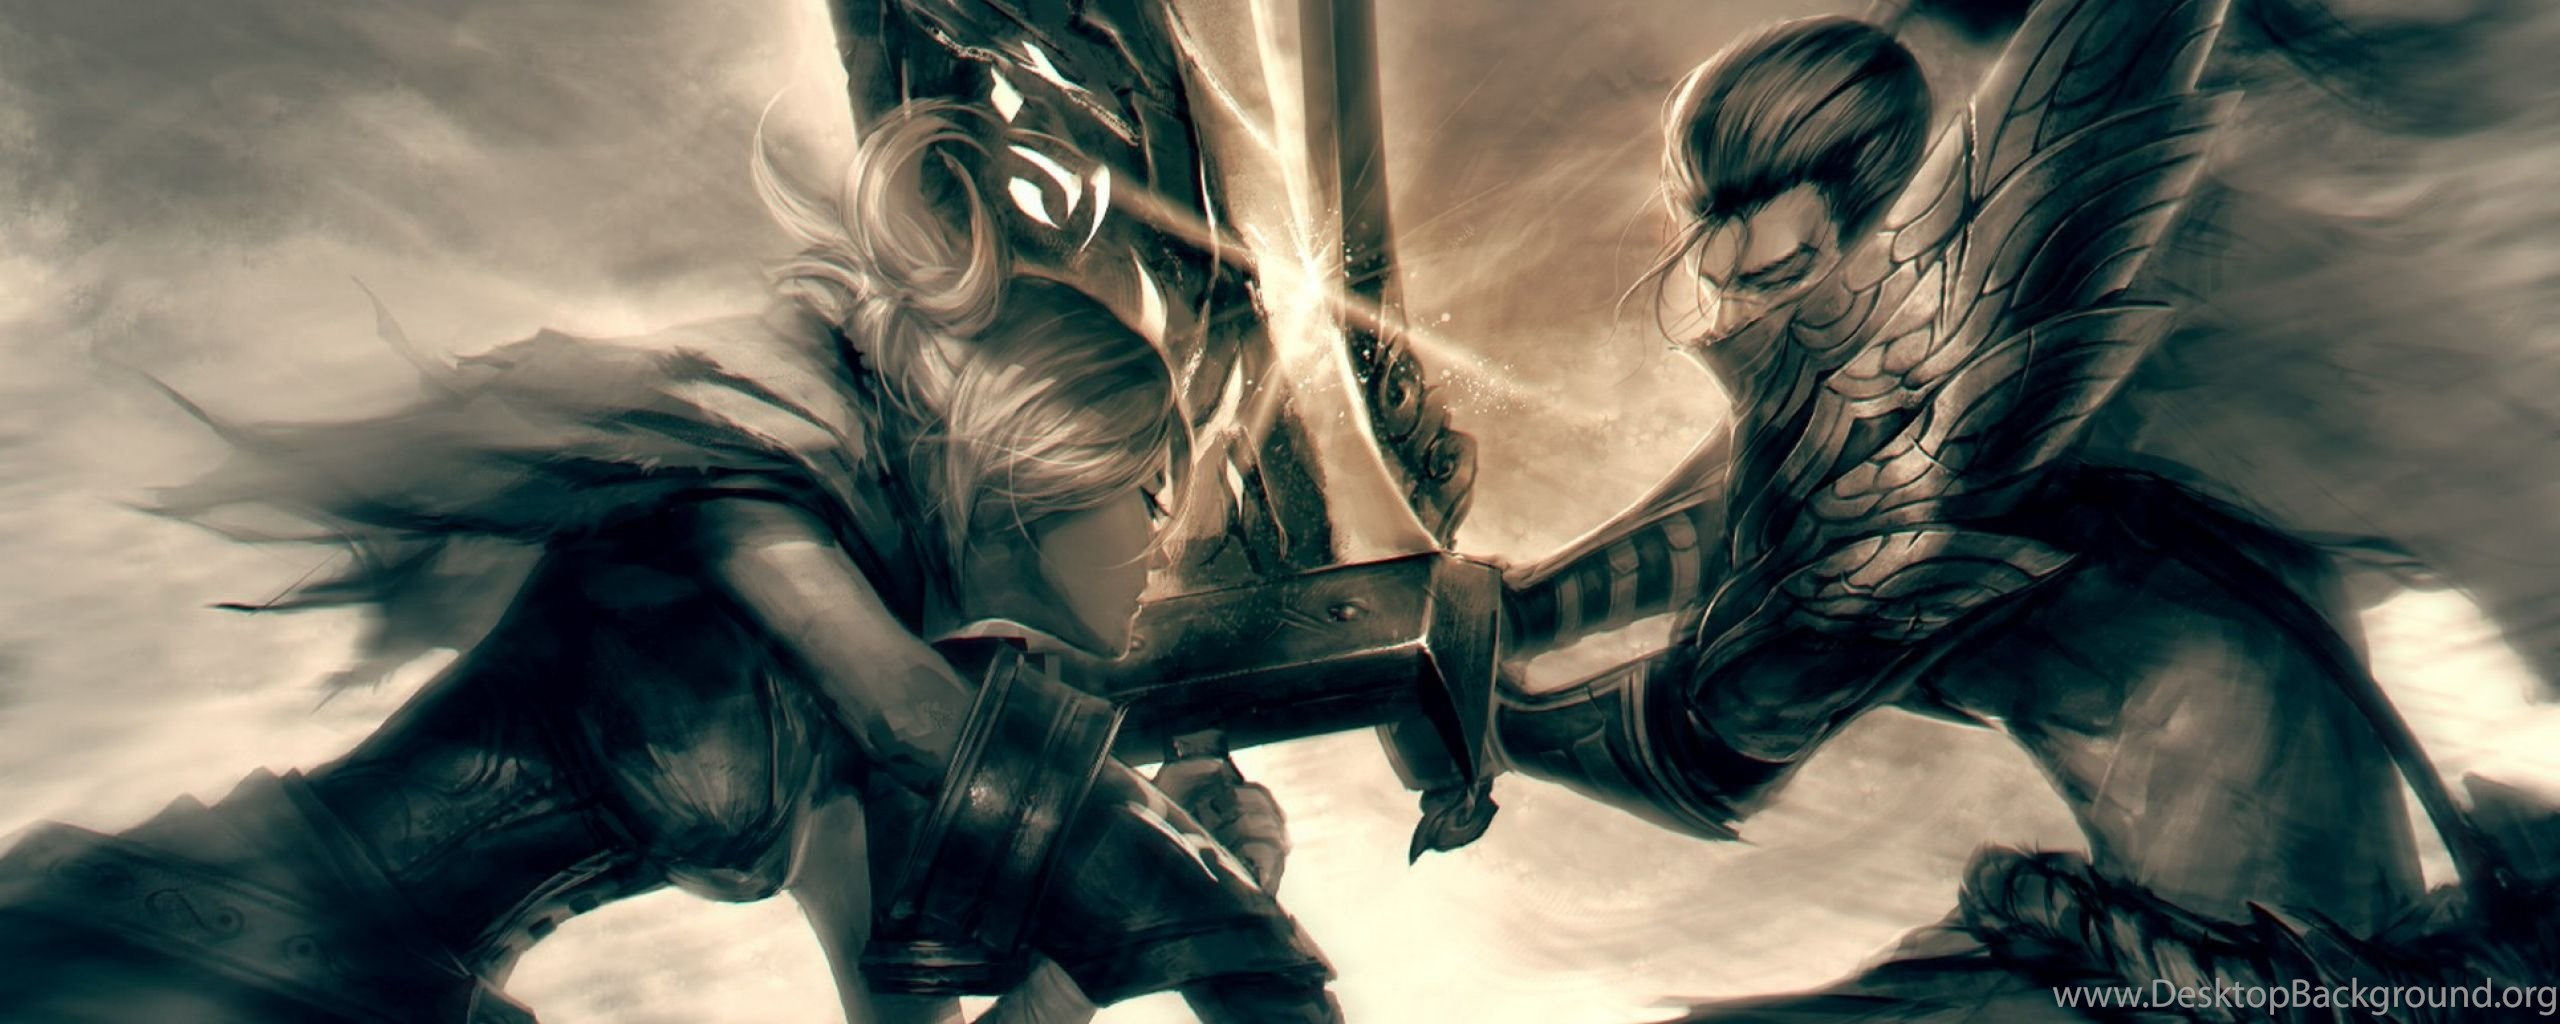 Dual Monitor Wallpaper League Of Legends: Dual Monitor Resolution League Of Legends Wallpapers HD